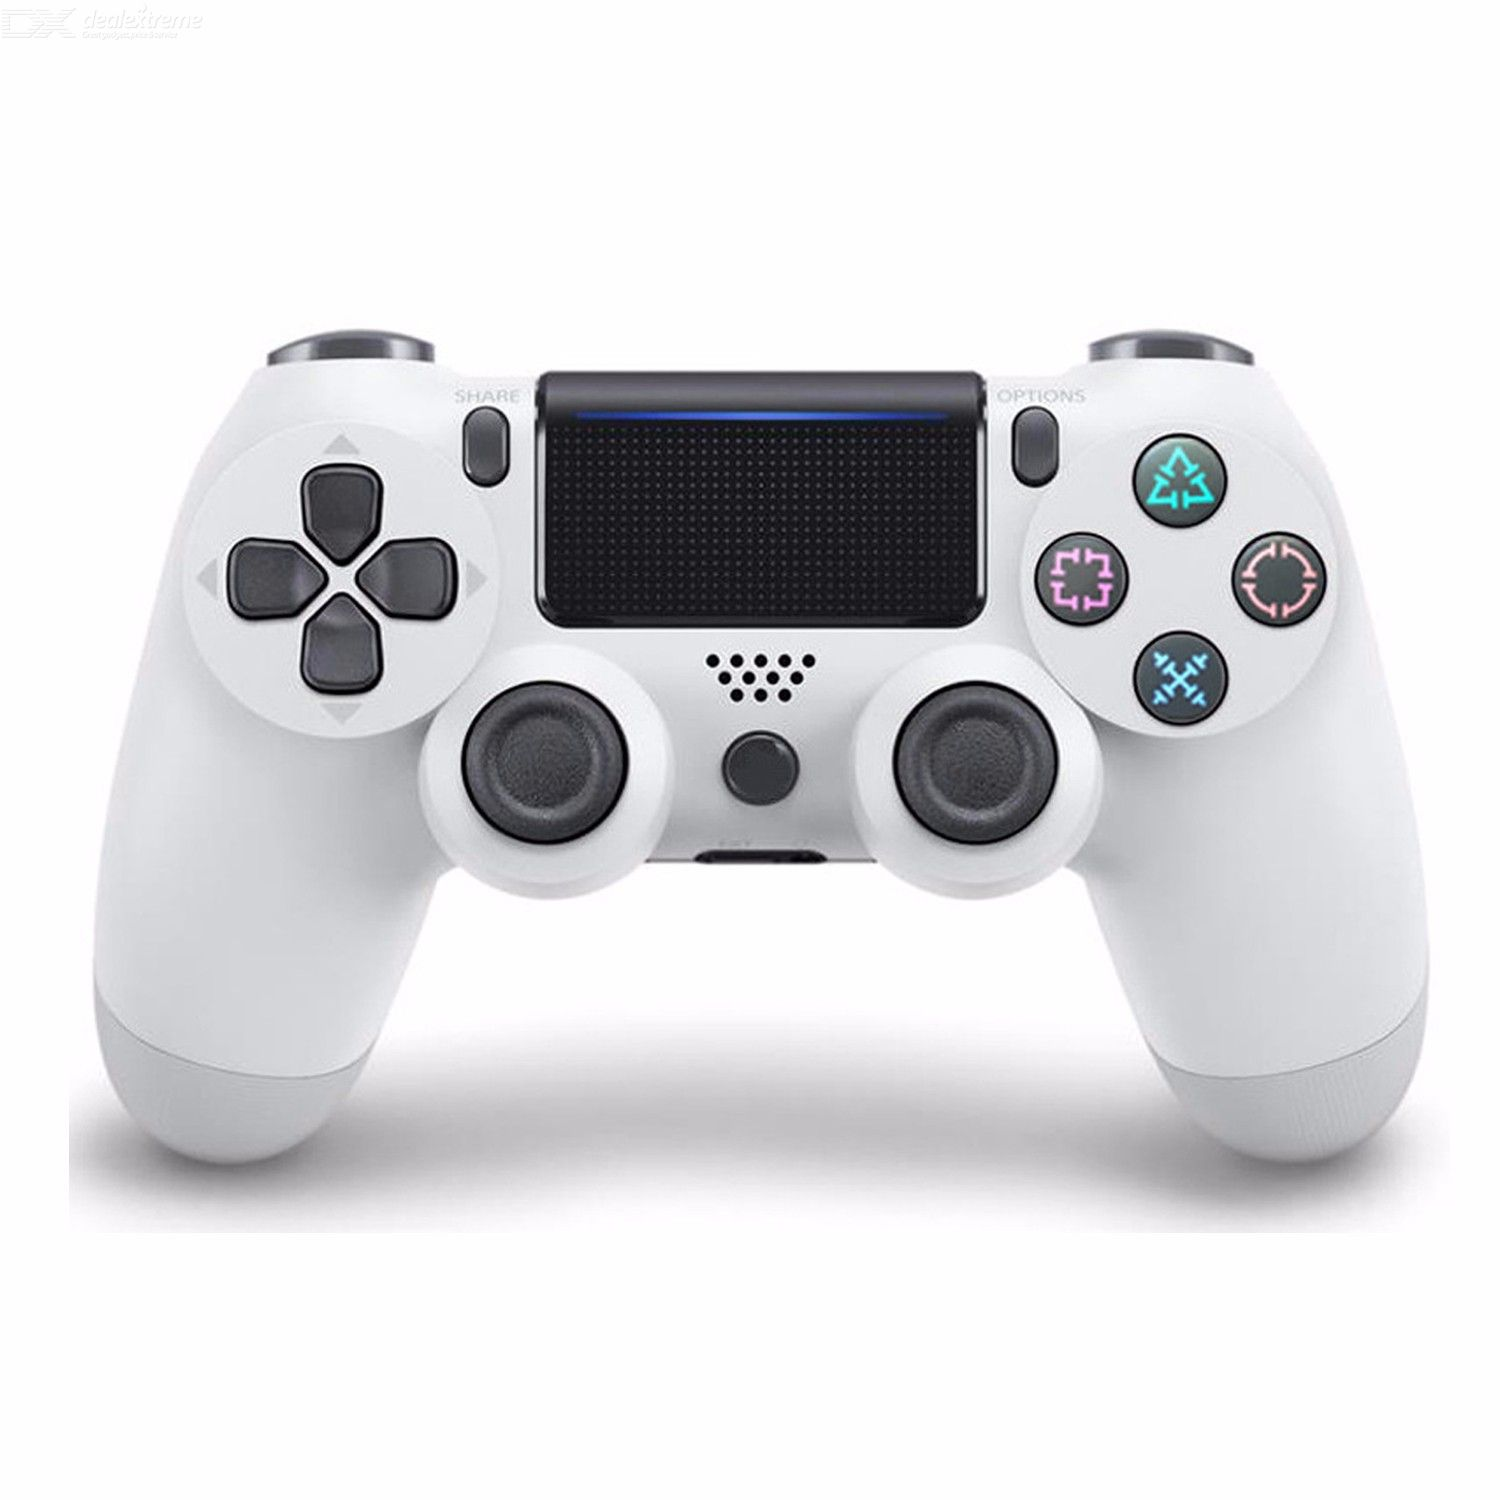 Wireless Gamepad Game Controller For Playstation, Silm PC Dualshock 4 Joystick Bluetooth Game Pad